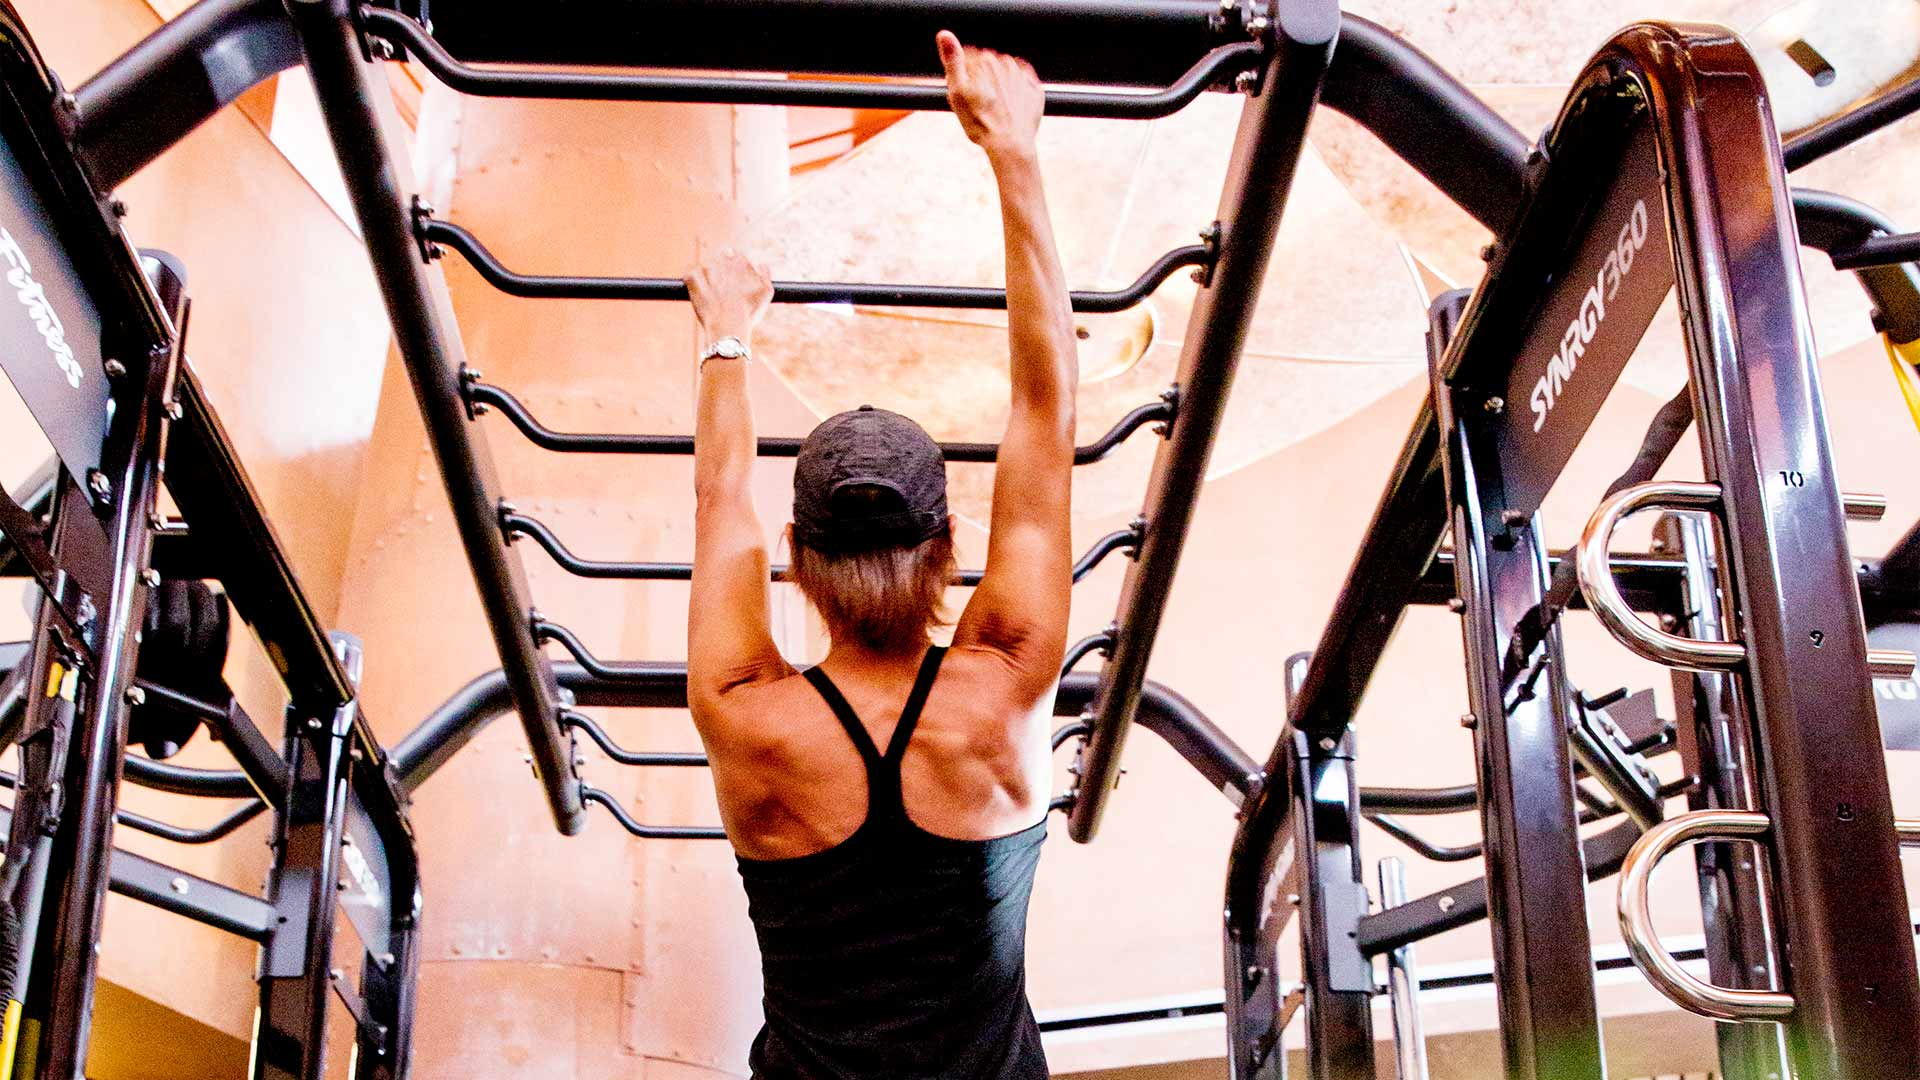 a woman in a black workout tank top and hat is working her way across rungs like monkey bars